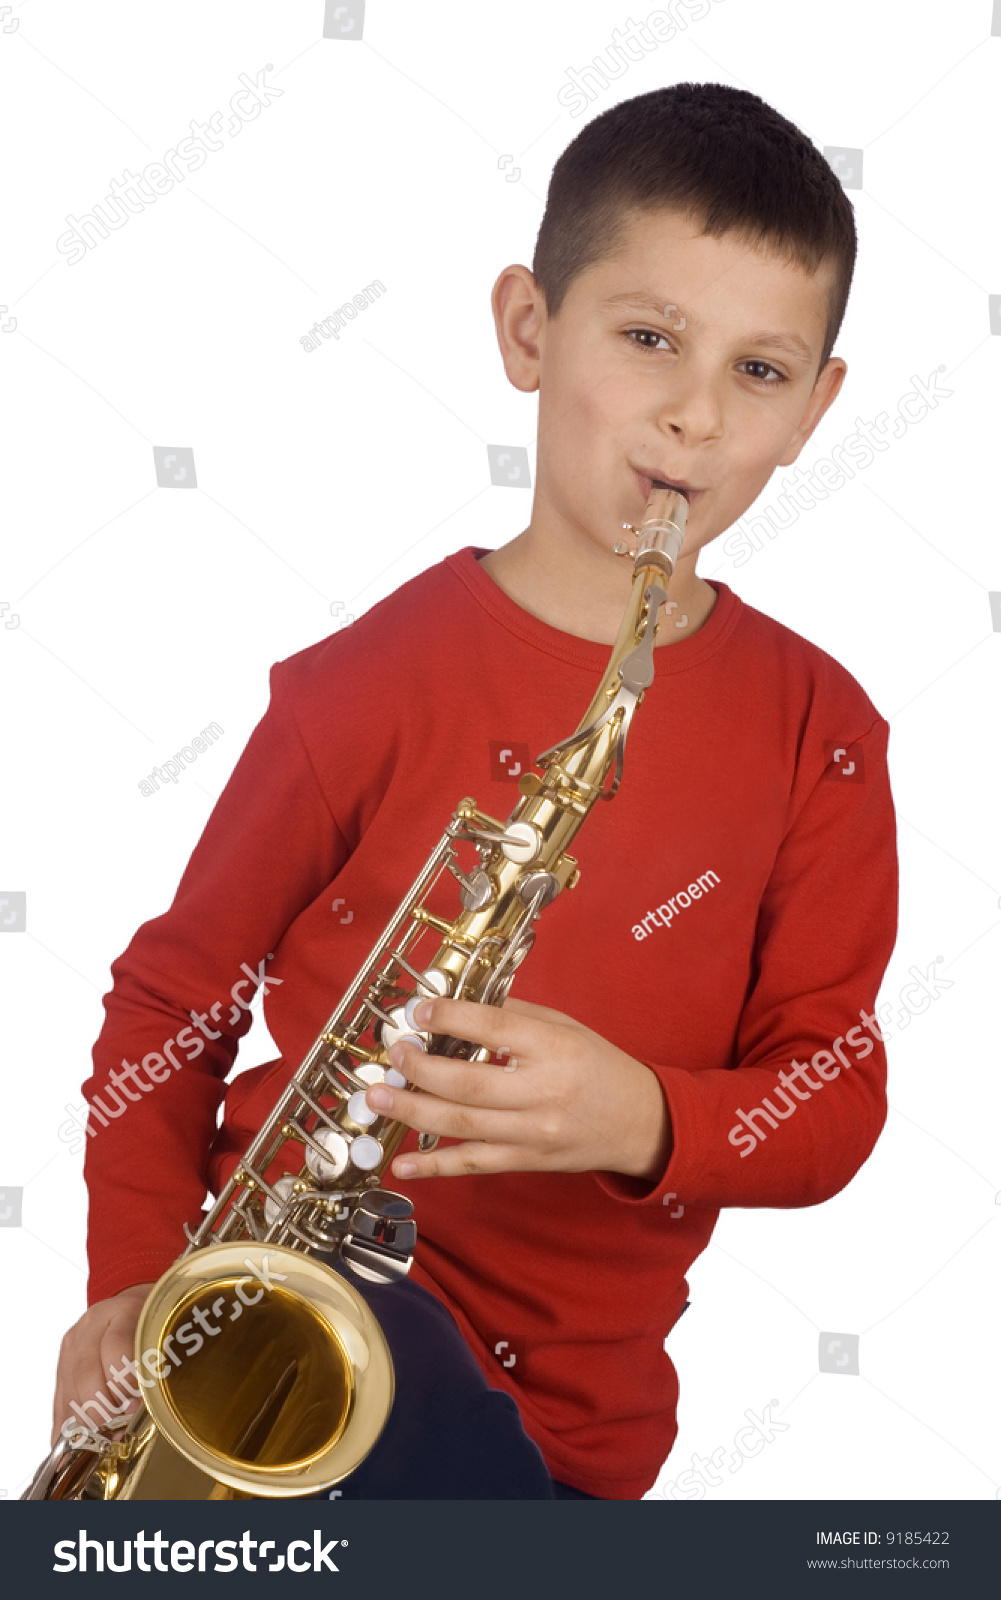 Young Boy Playing Sax Stock Photo 9185422 - Shutterstock-8134